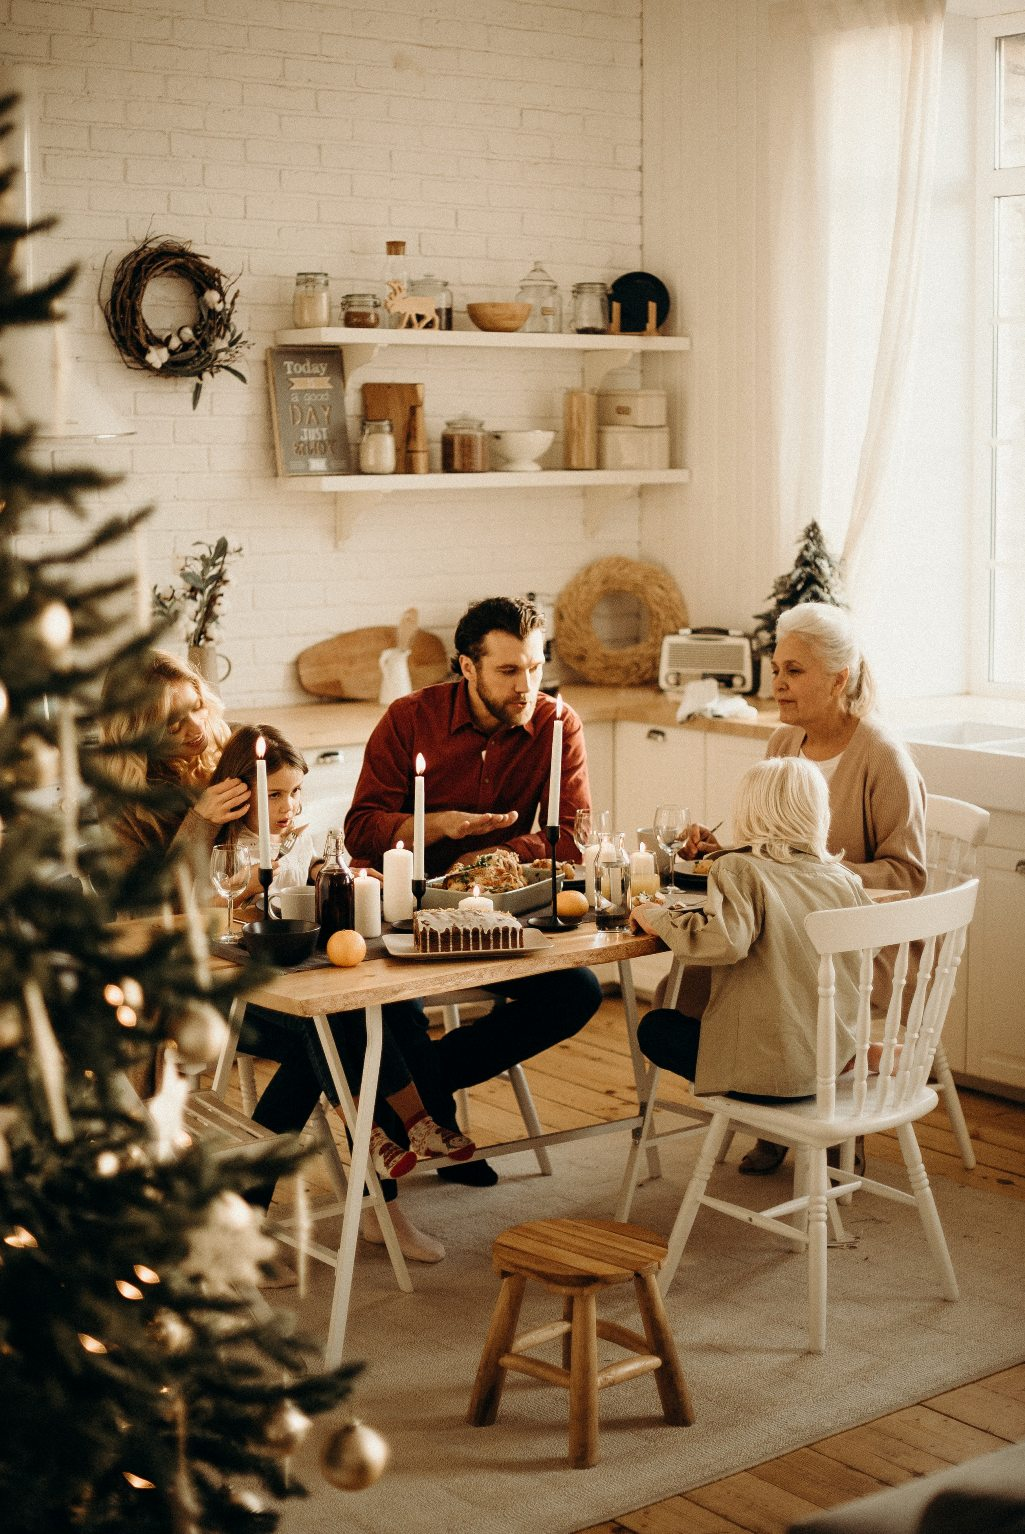 family-sitting-near-dining-table-and-eating-food-3171157